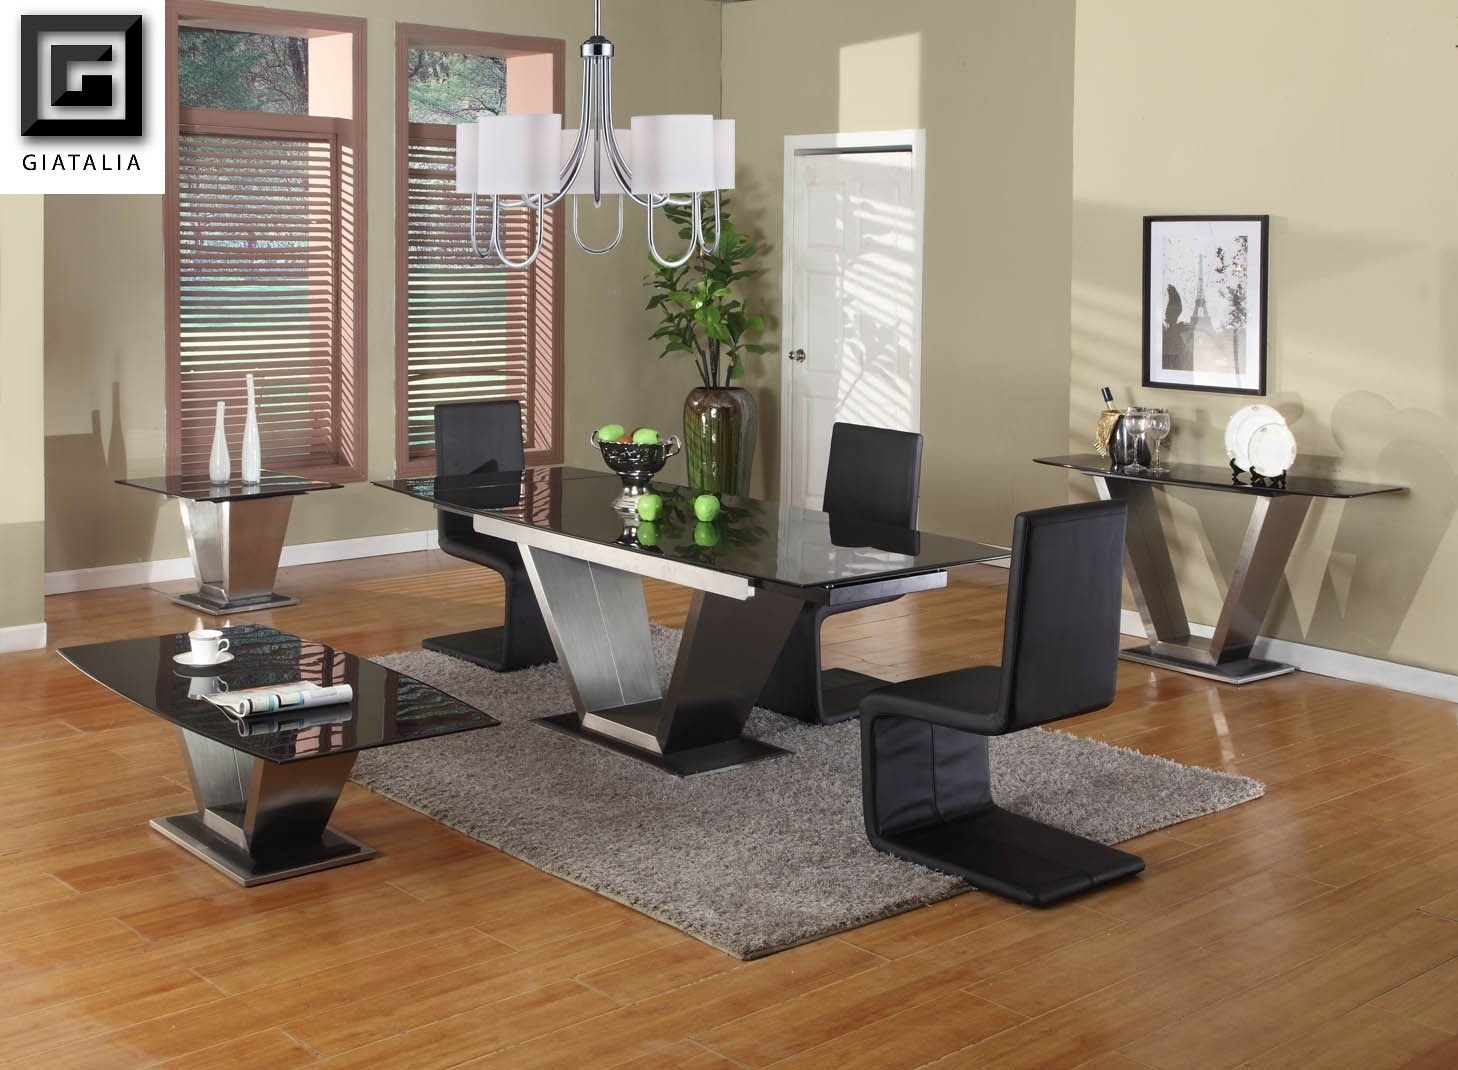 Granite Top Dining Table You Ll Love In 2021 Visualhunt